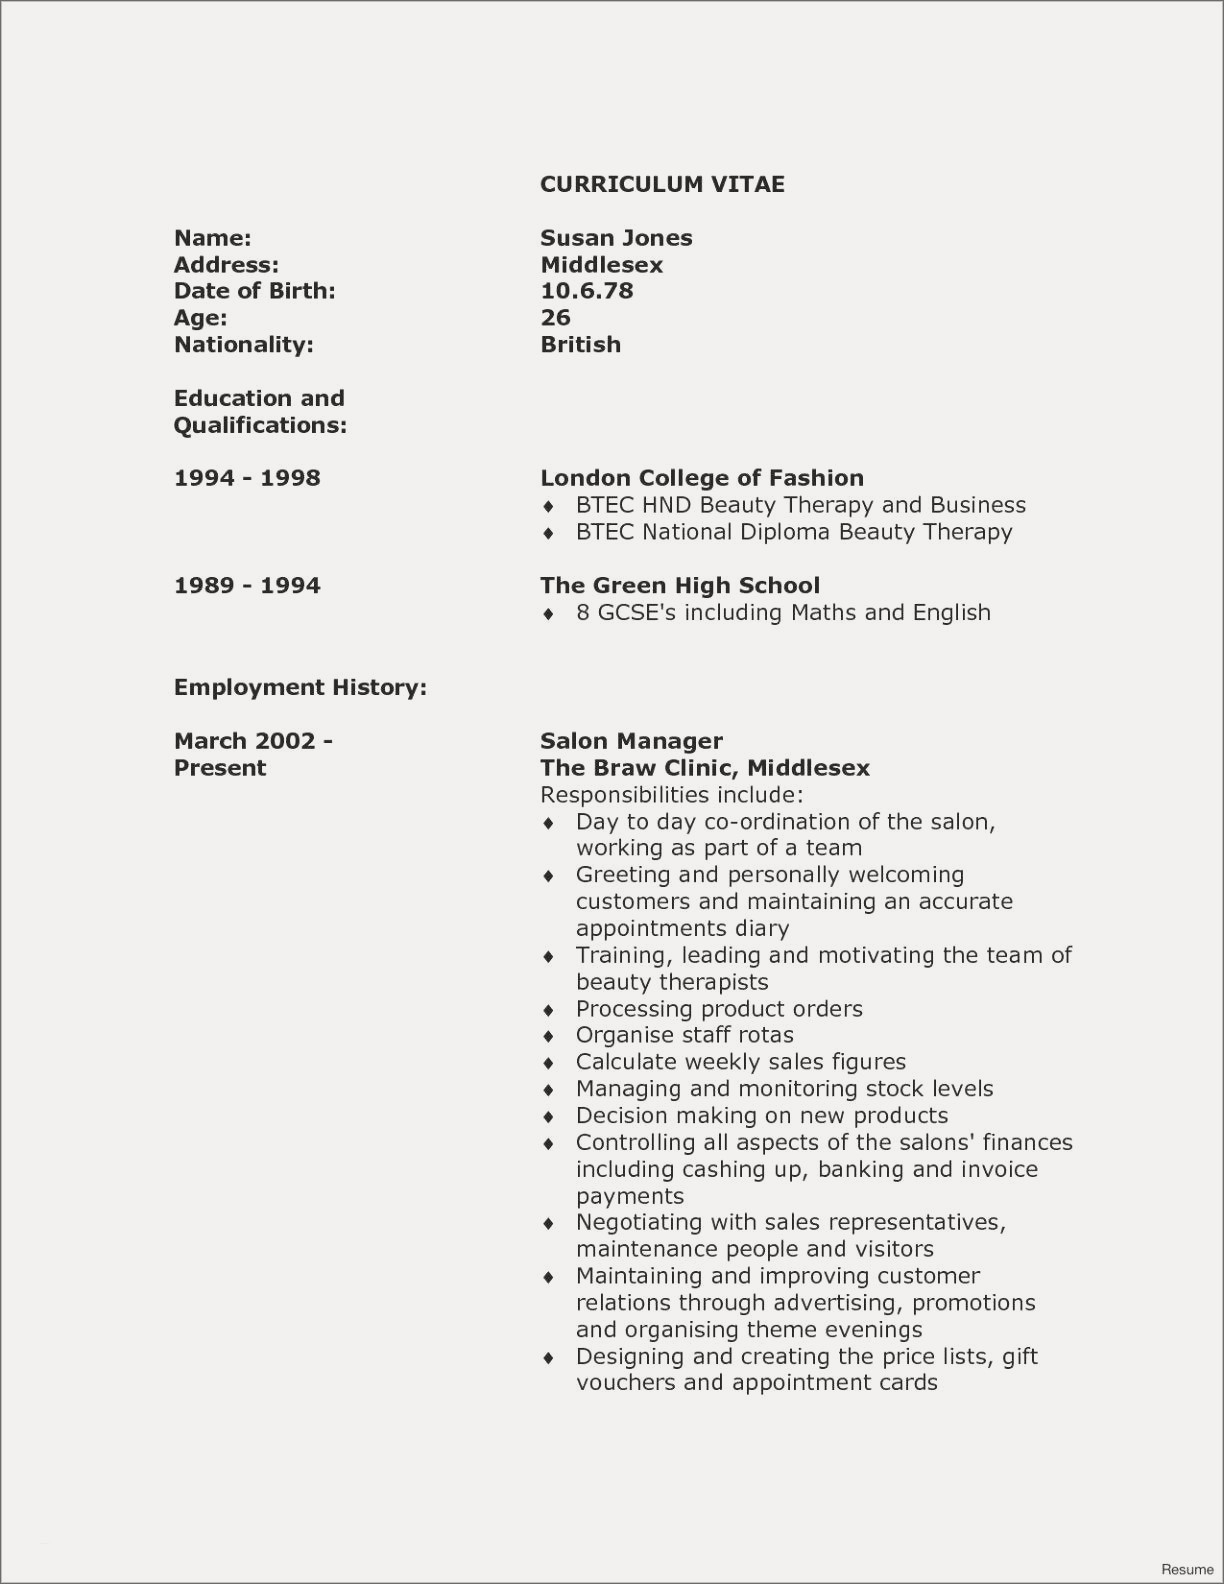 education resume example-Standard Resume Objective New Teacher Resume Example Awesome Resume Examples 0d Skills Examples 15-t